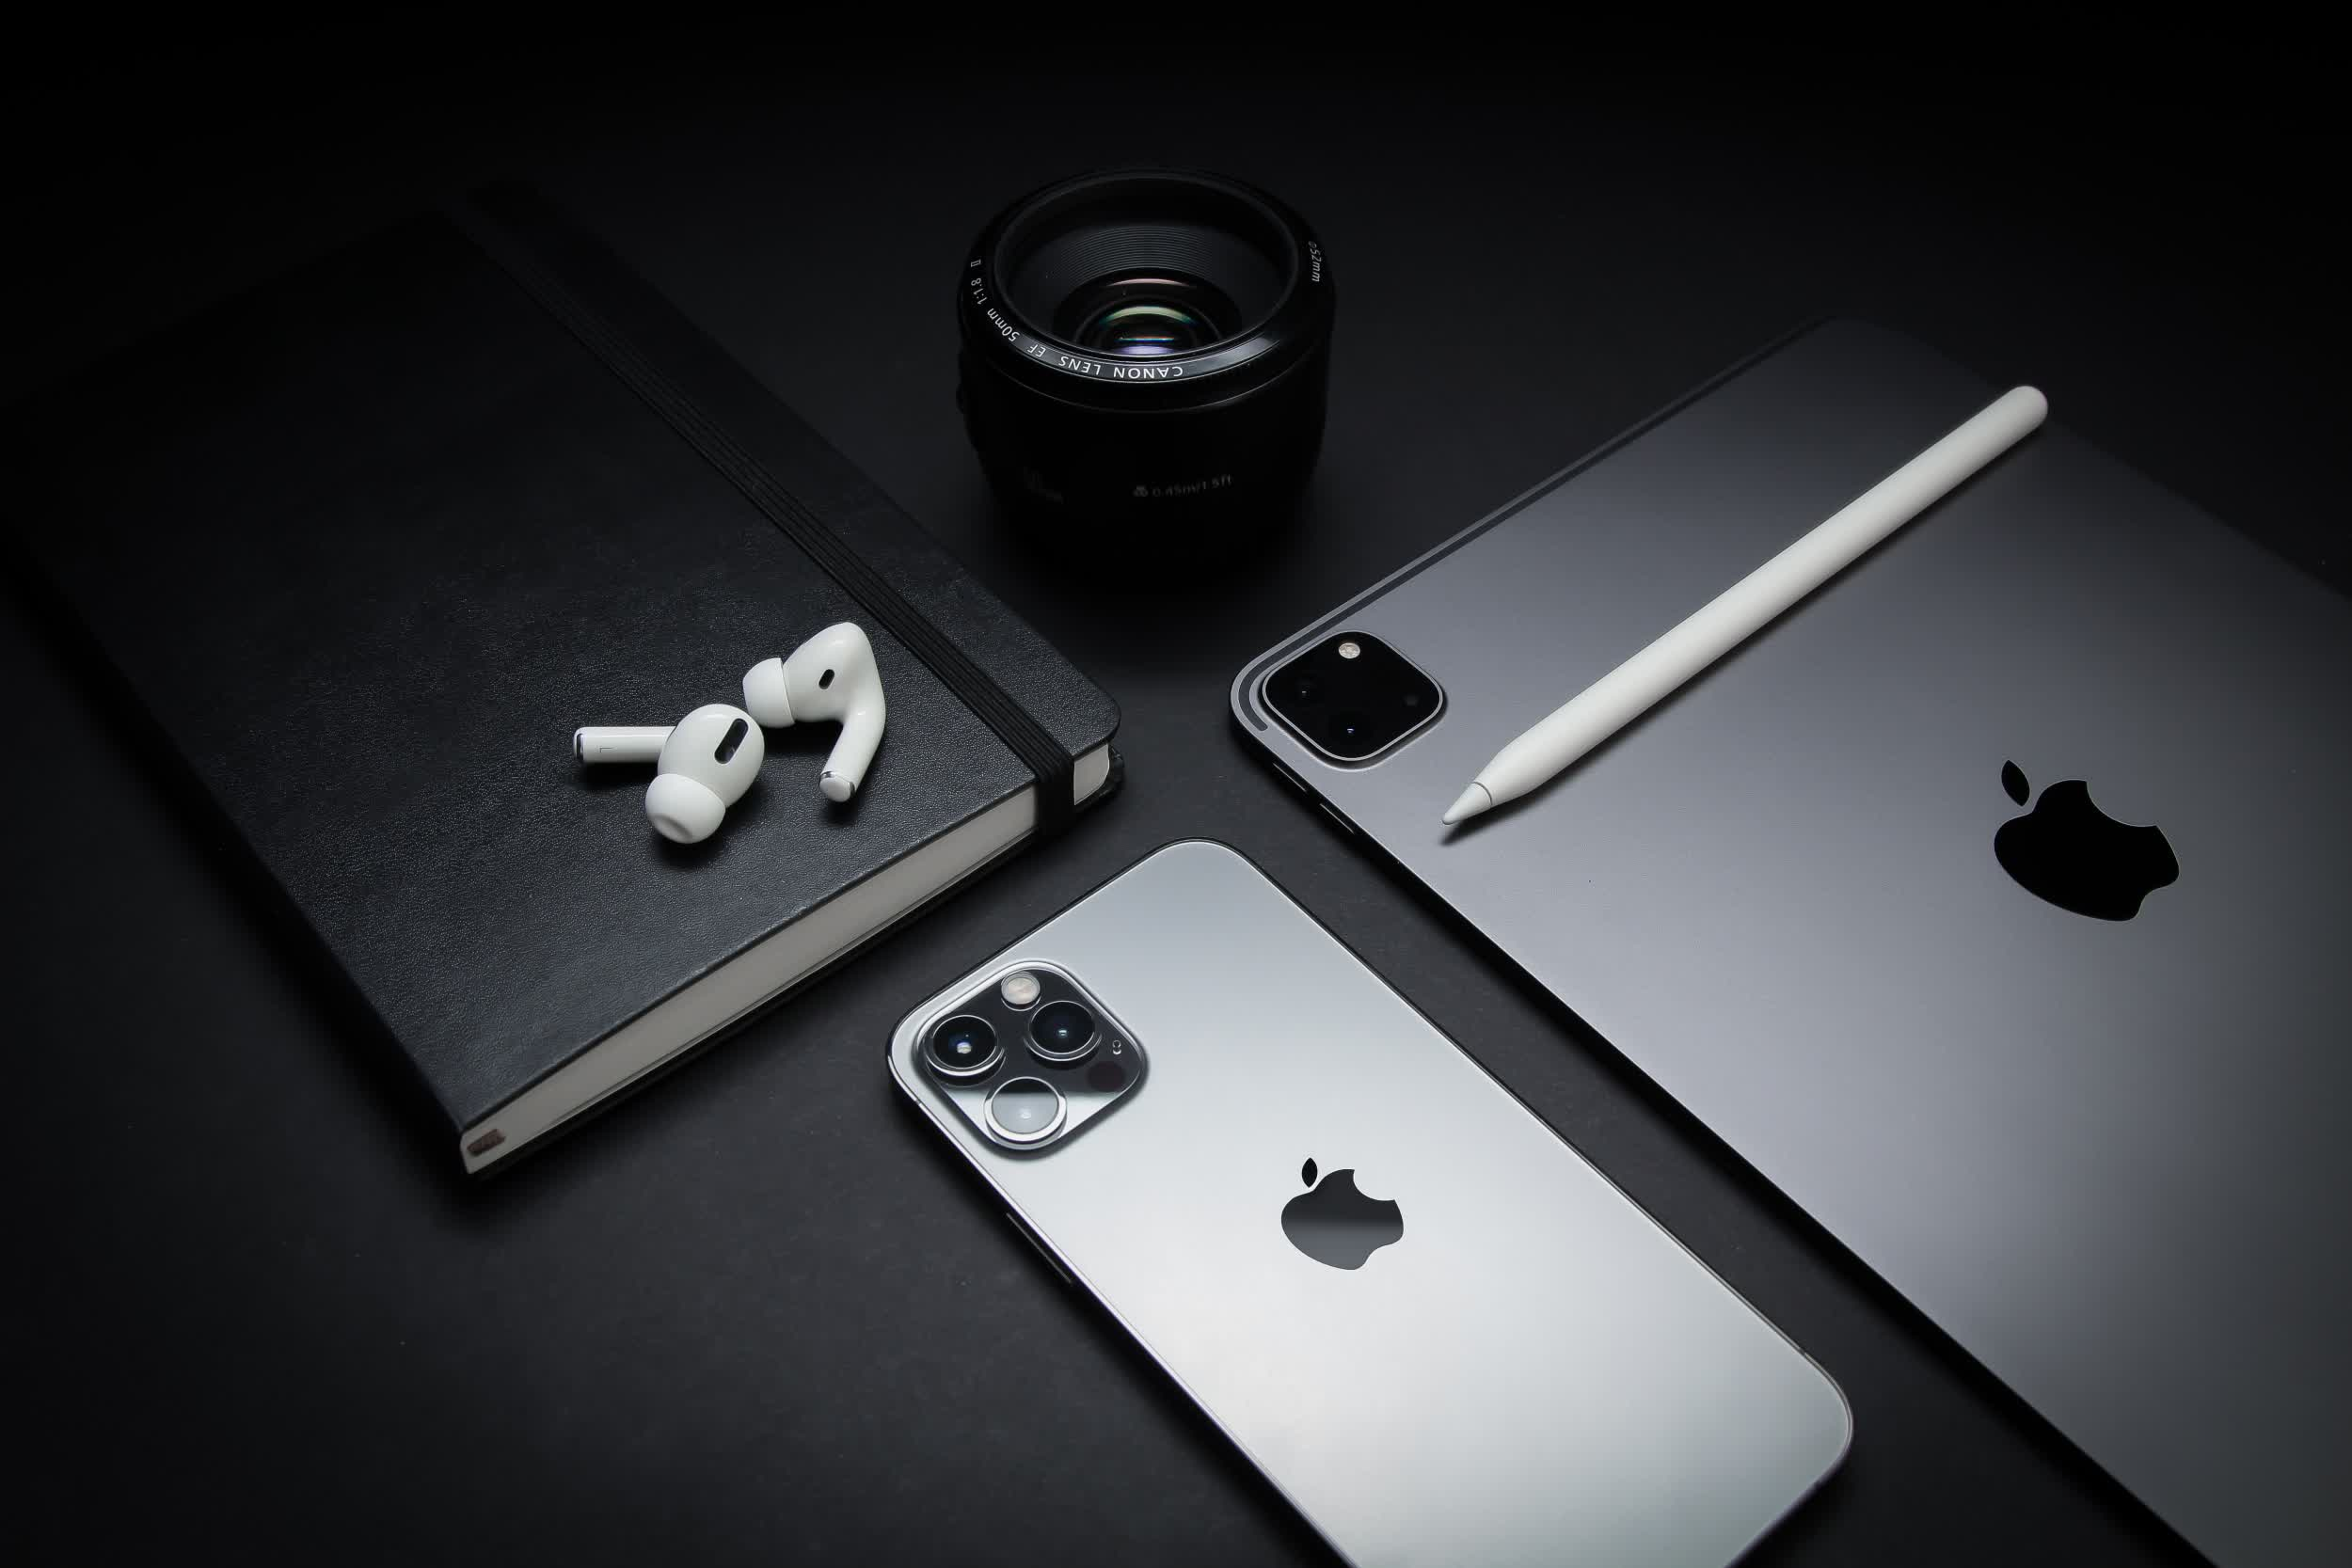 Apple may host multiple September events, cramming all fall product launches into a single month